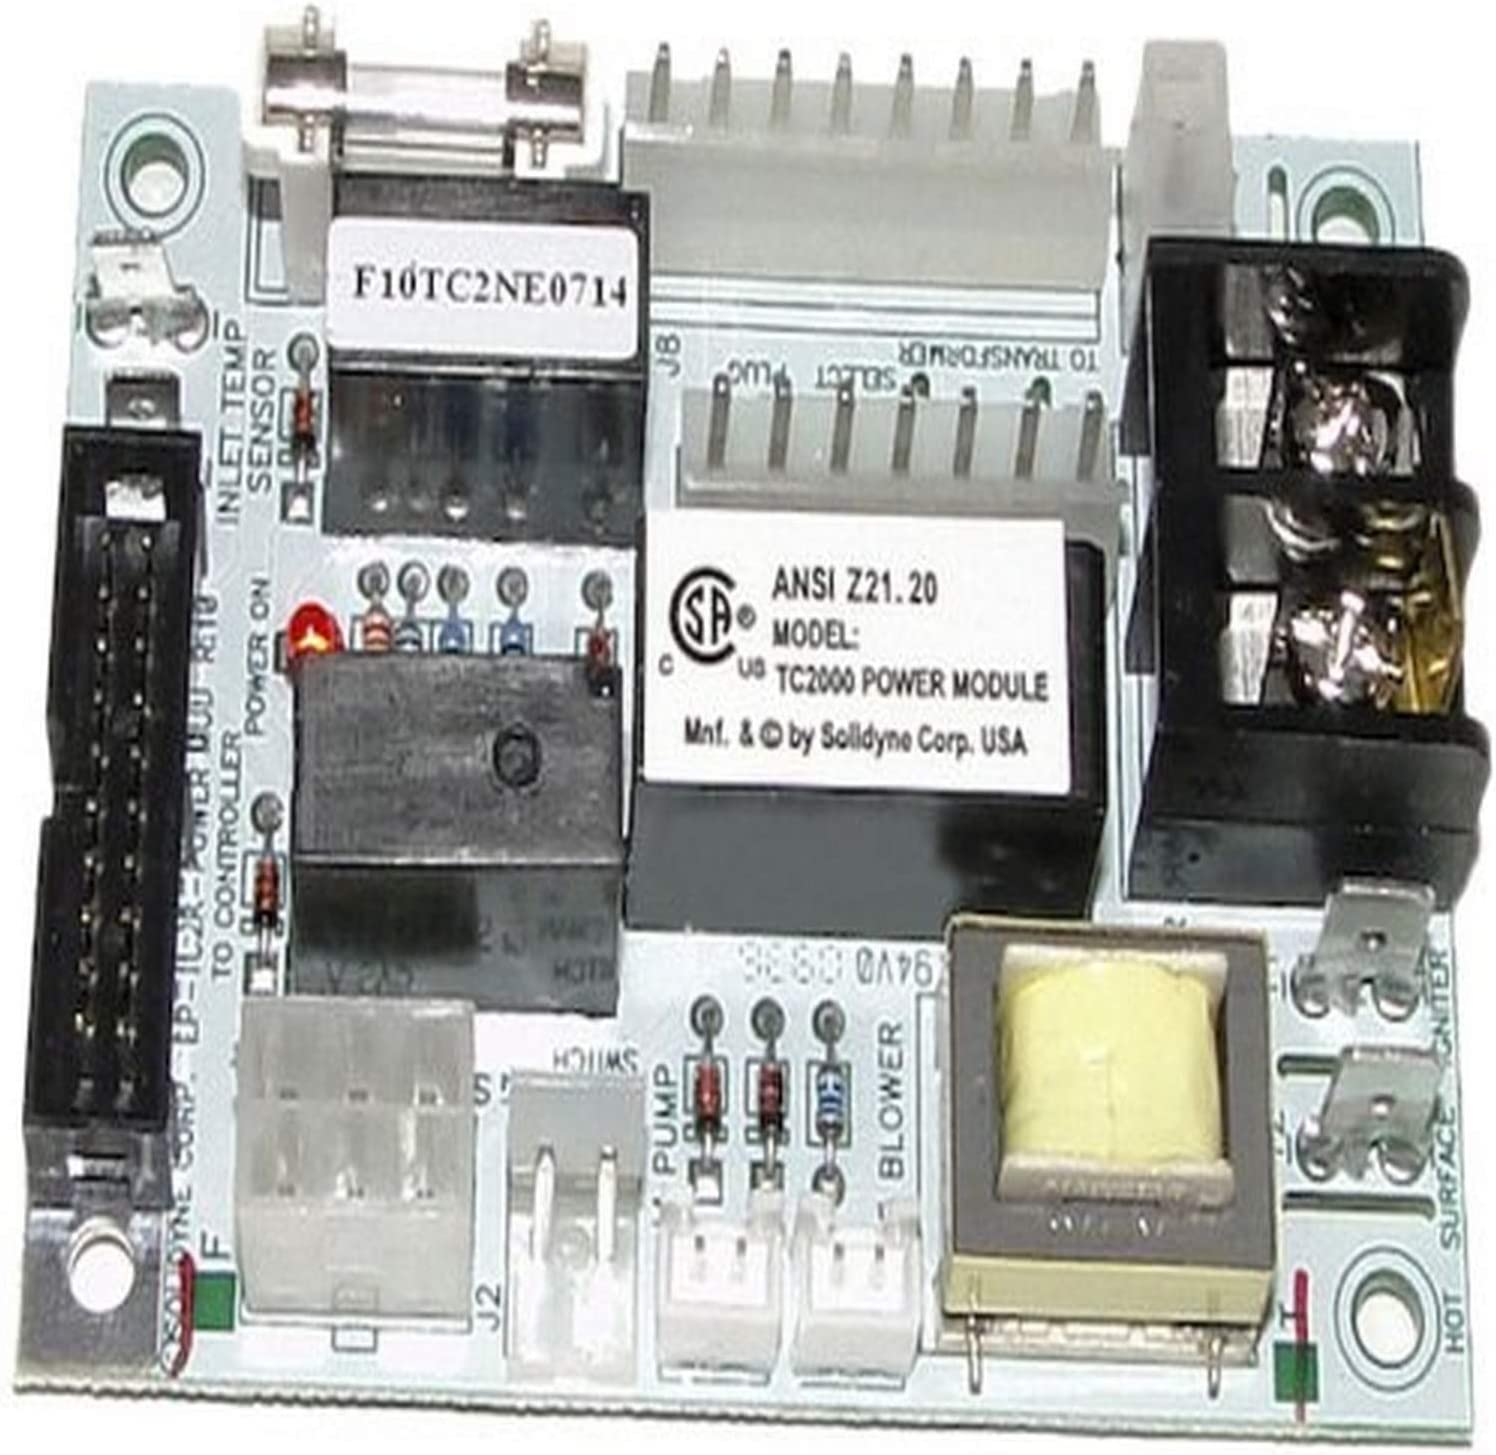 Zodiac R0366800 Power Control Board Replacement for Jandy Lite2LJ Pool and Spa